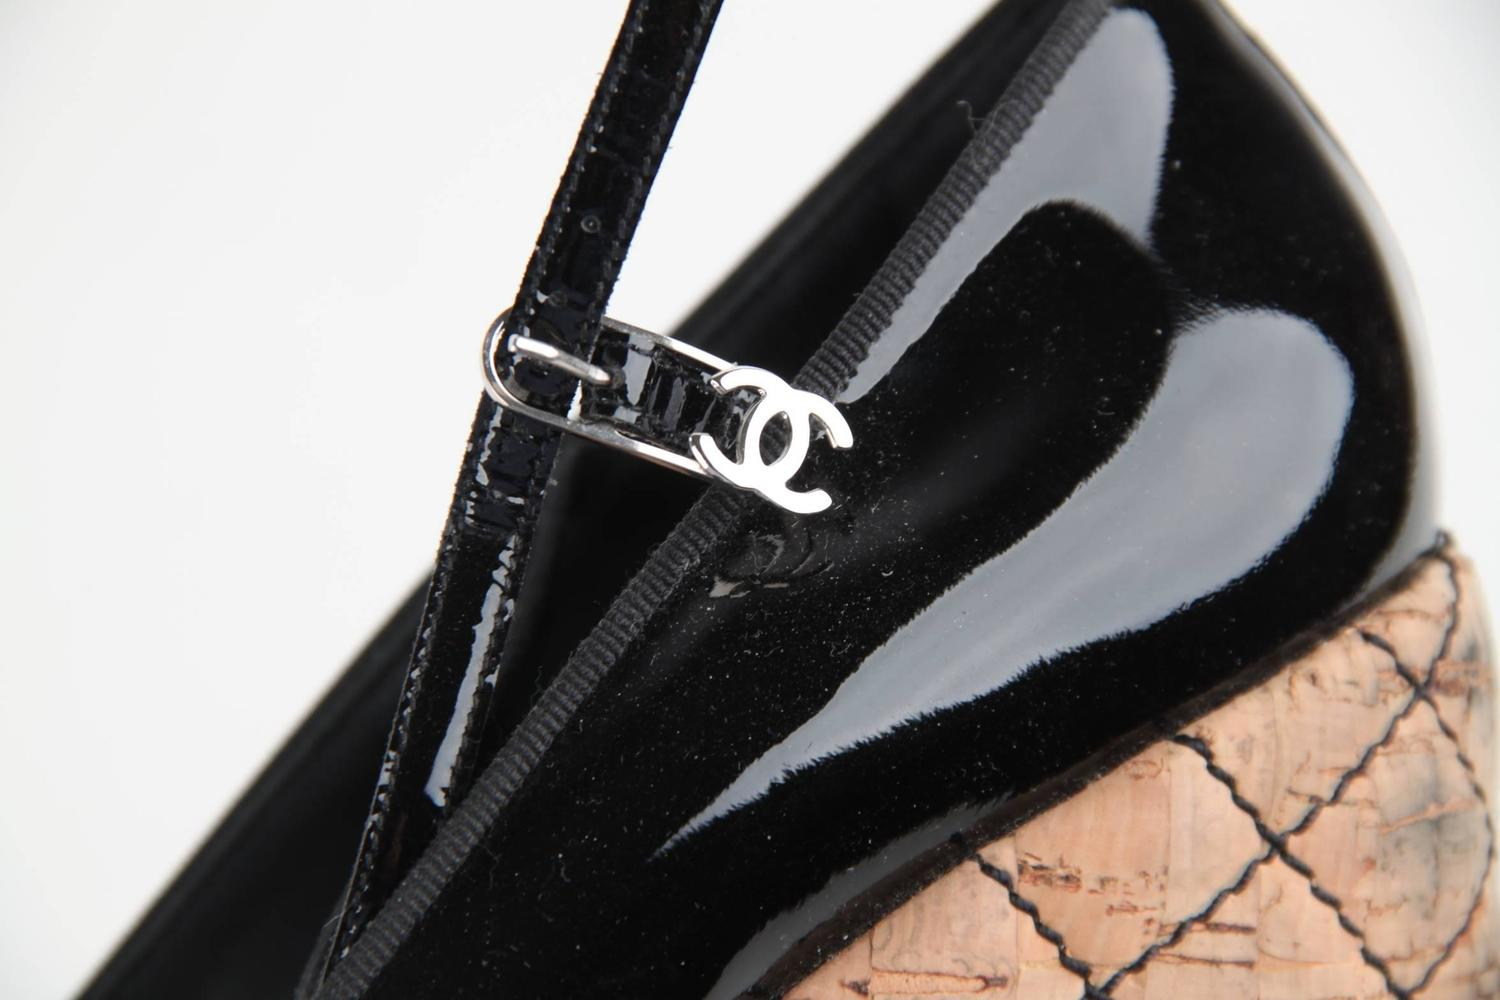 chanel black patent leather wedge shoes closed toe cork